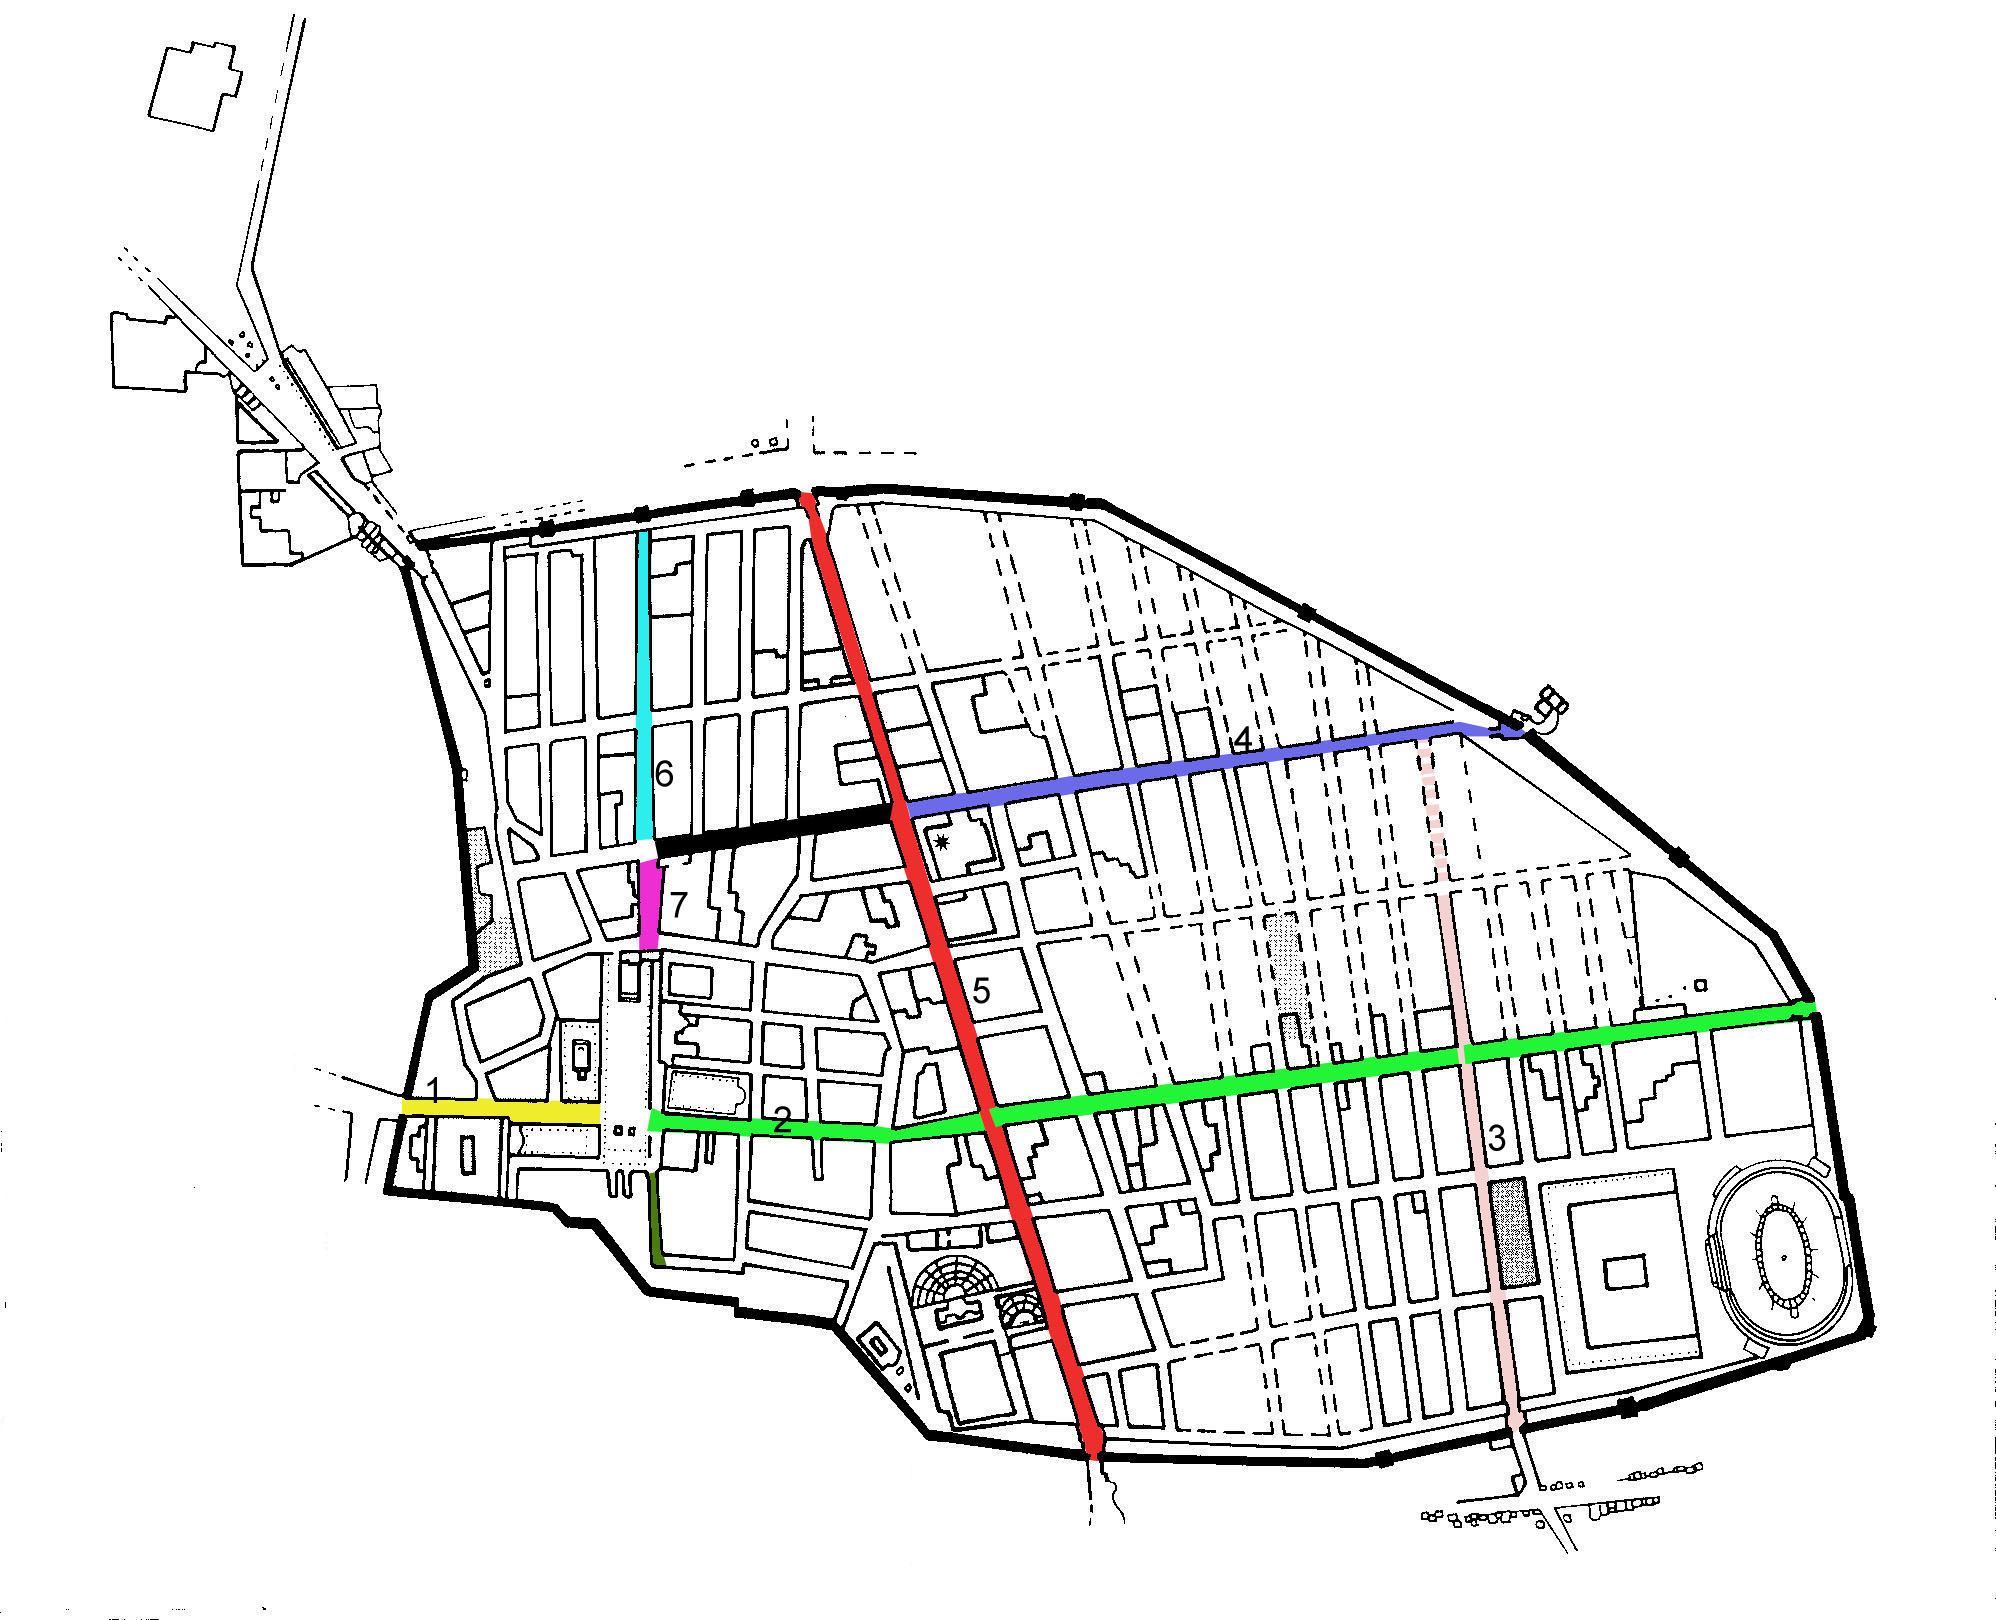 File:Map showing the main streets of Pompeii.jpg